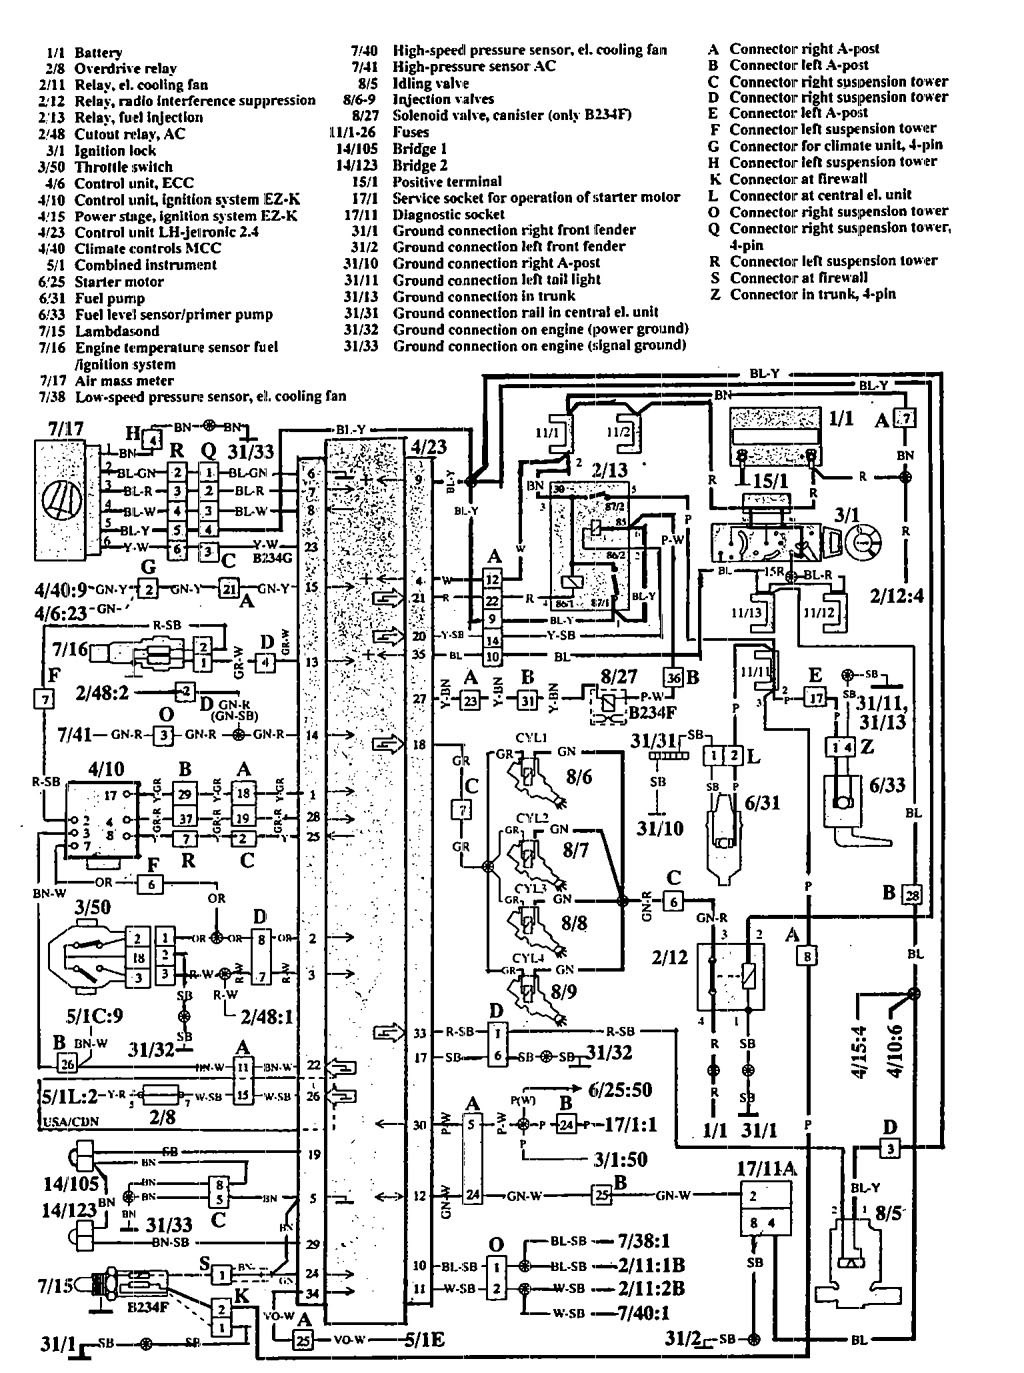 Volvo A30d Wiring Diagram | basic electronics wiring diagram on